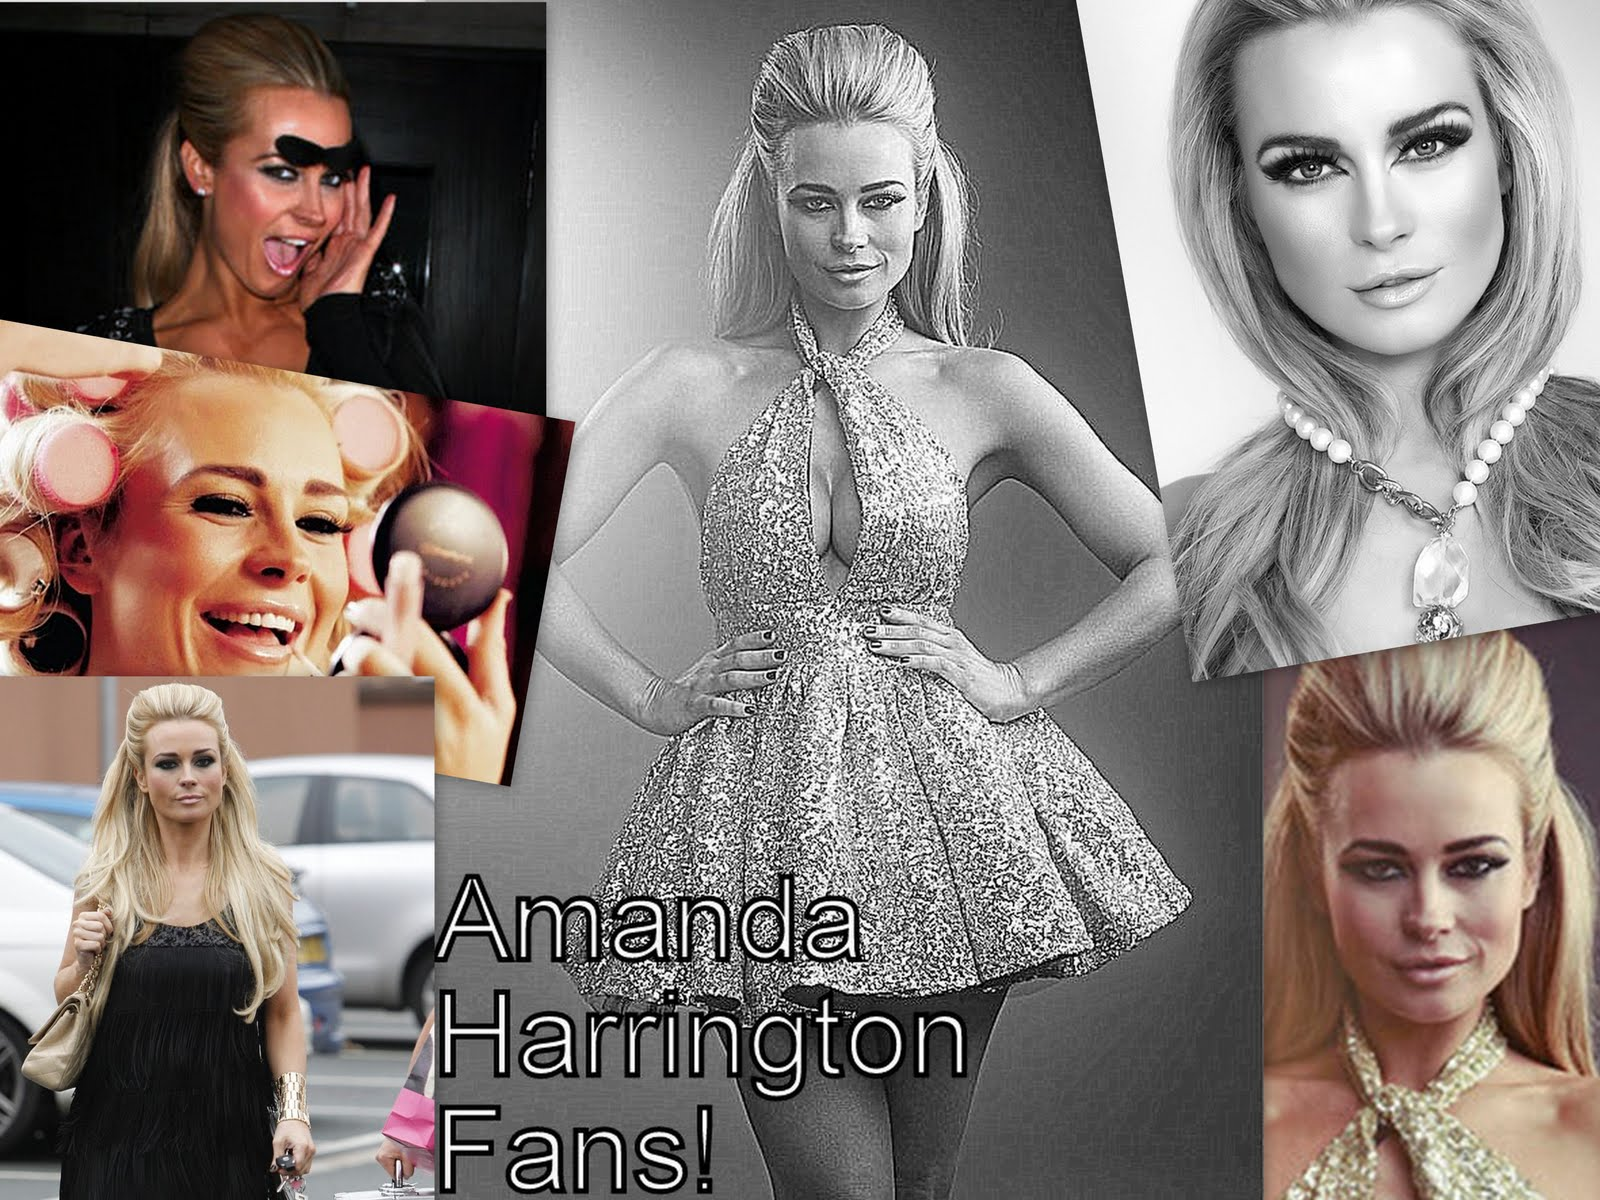 Amanda Harrington 4ever!